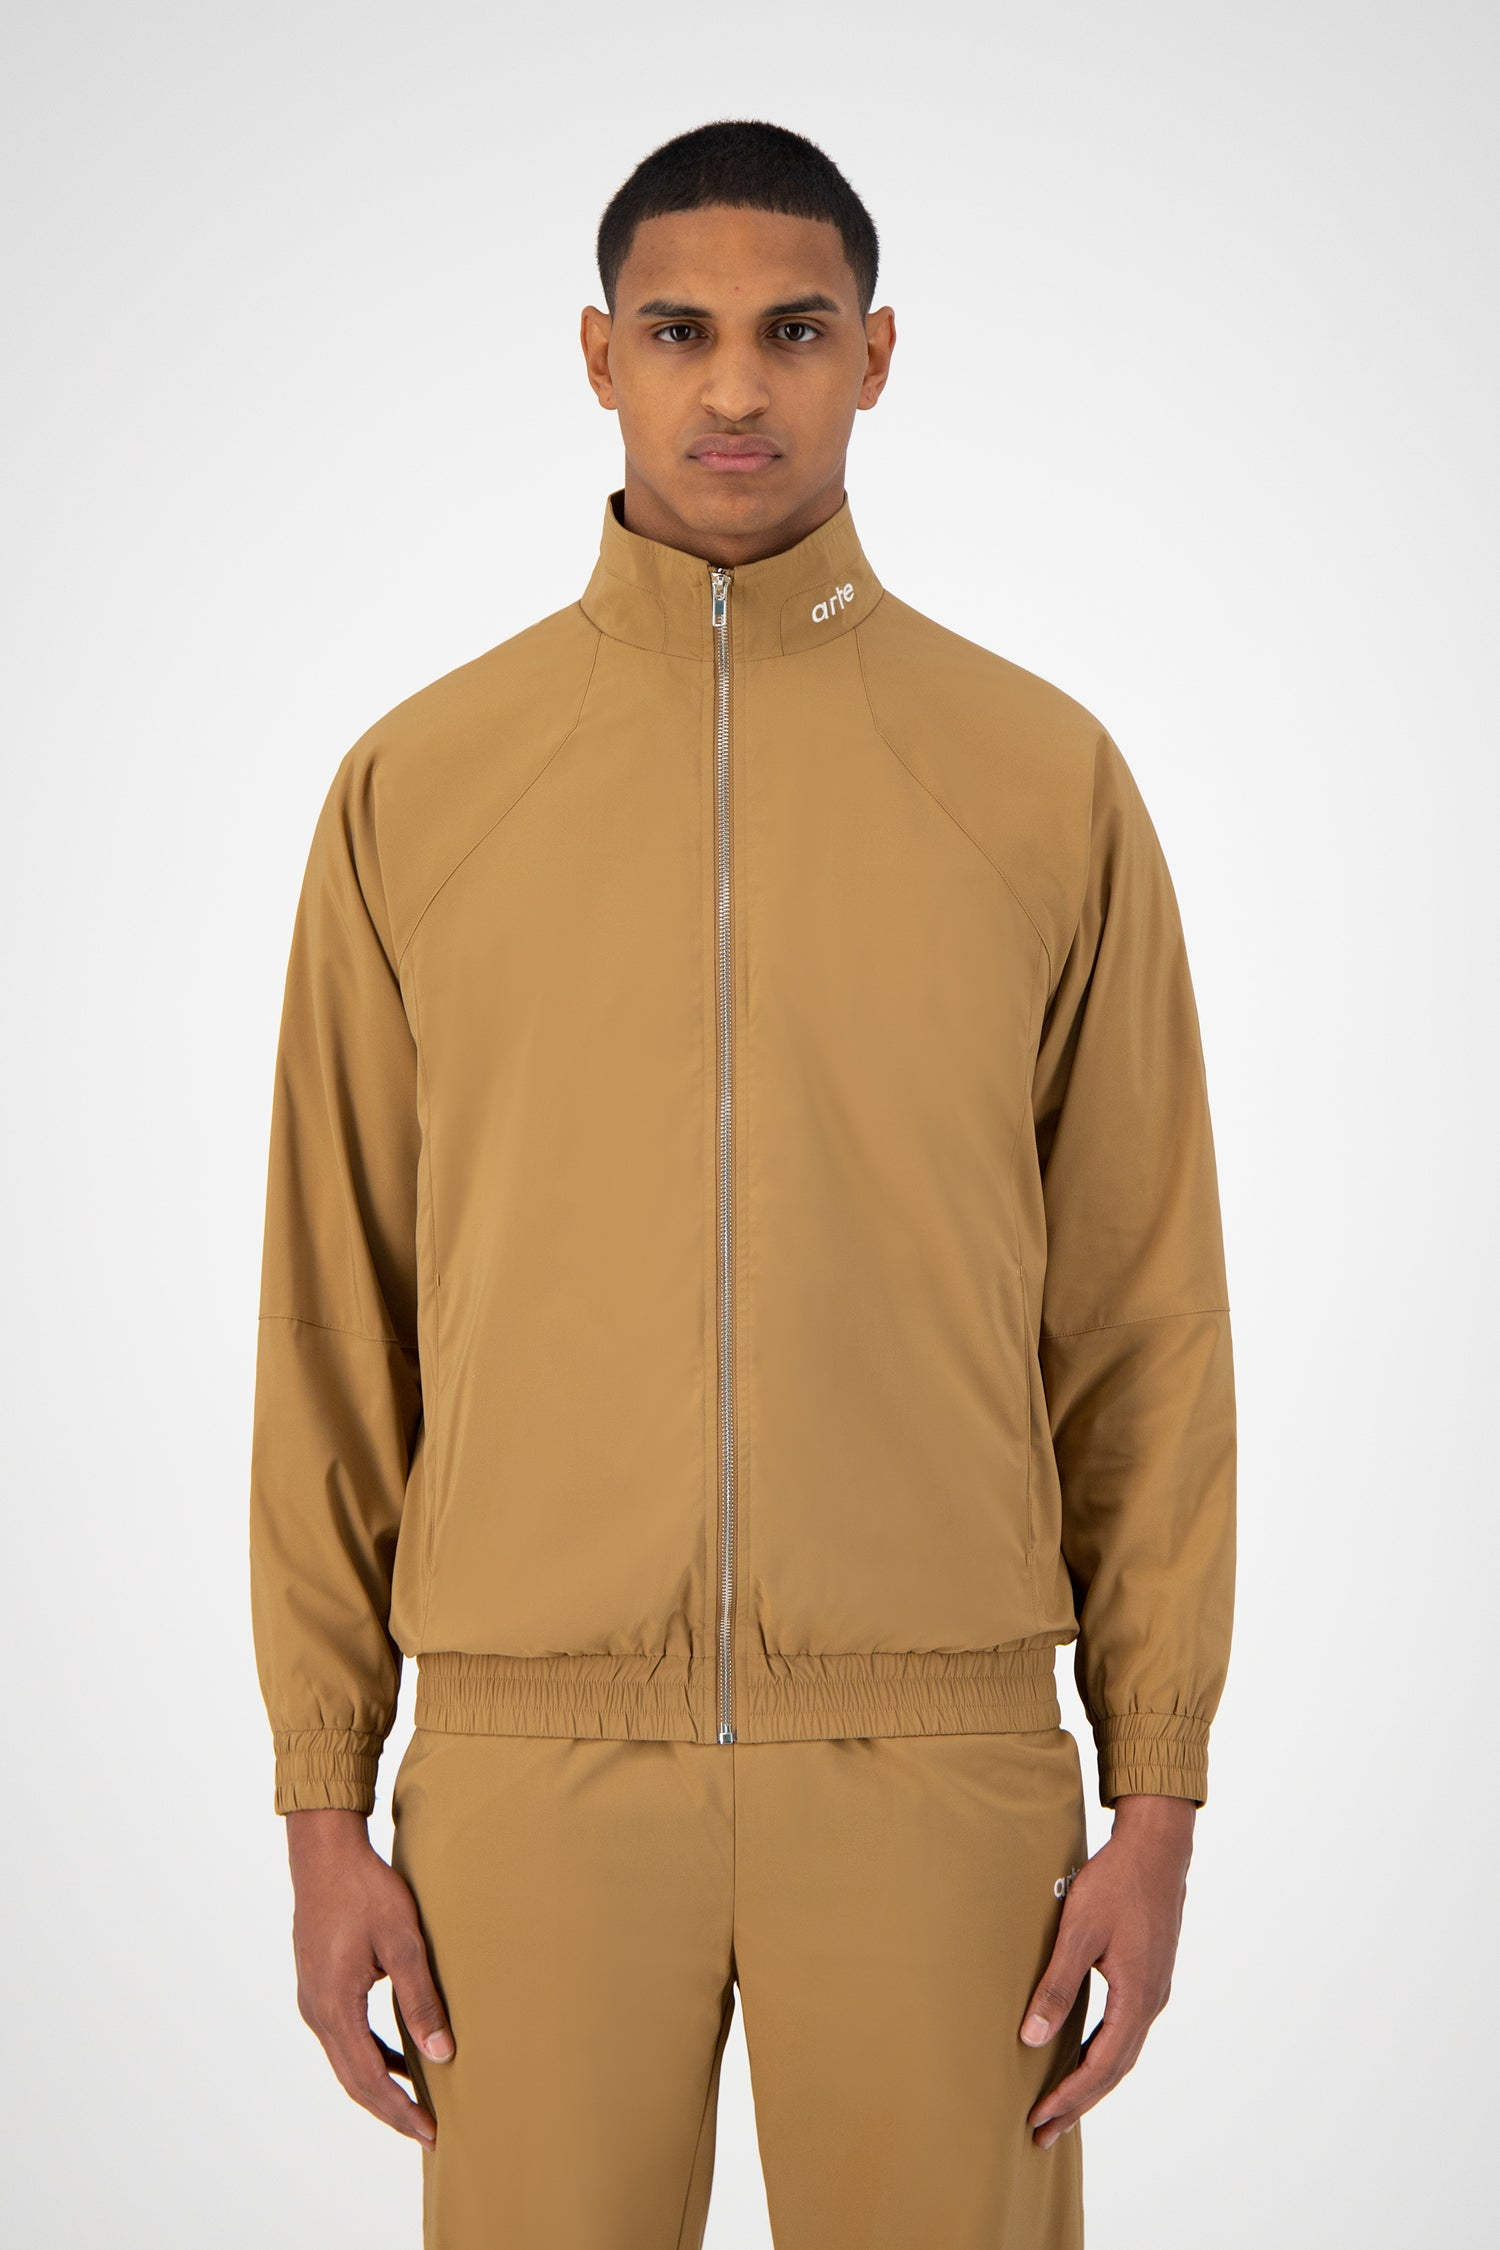 Jordan Tracktop - Brown